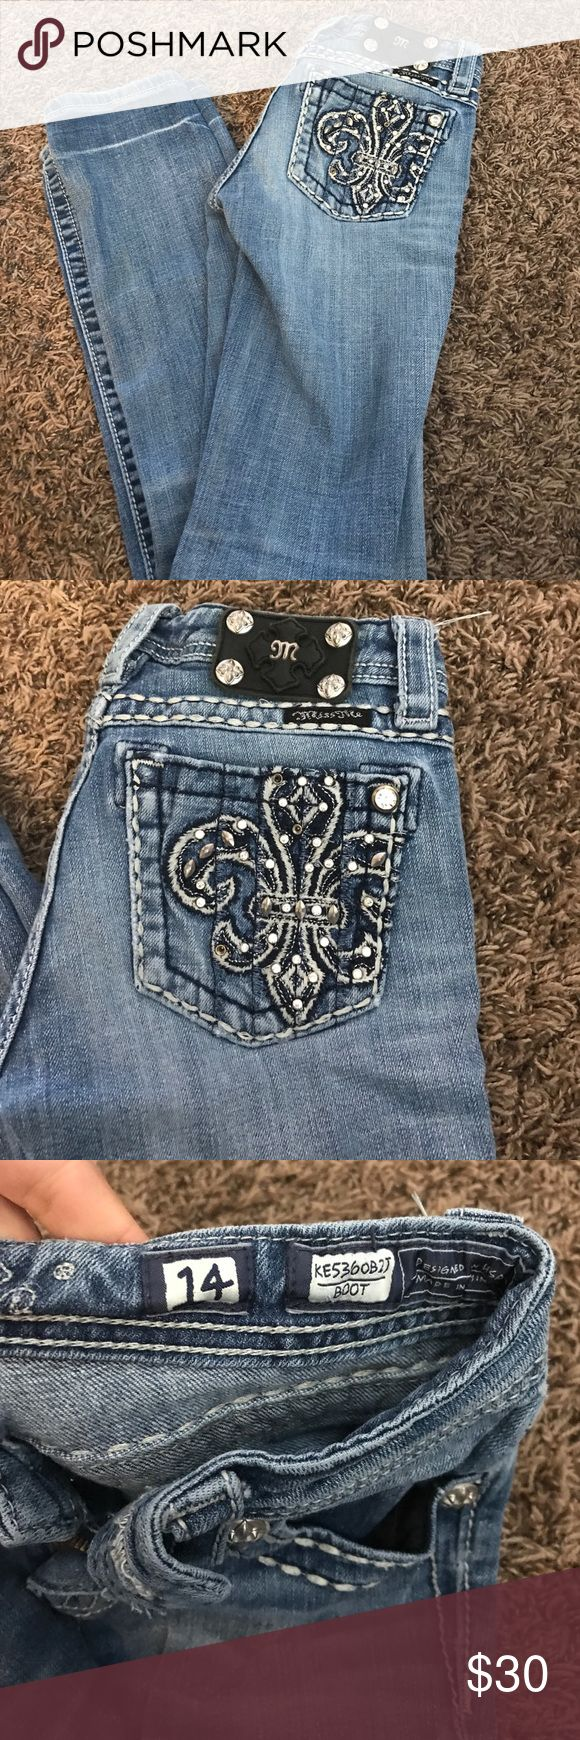 Girls size 14 miss me jean Girls size 14 miss me jean these we originally boot cut but were altered into more of a straight leg also button fell off so we put one on I'm sure if you went to your local buckle store they give you a button for them we just never got around to it and the button we put worked fine Miss Me Bottoms Jeans